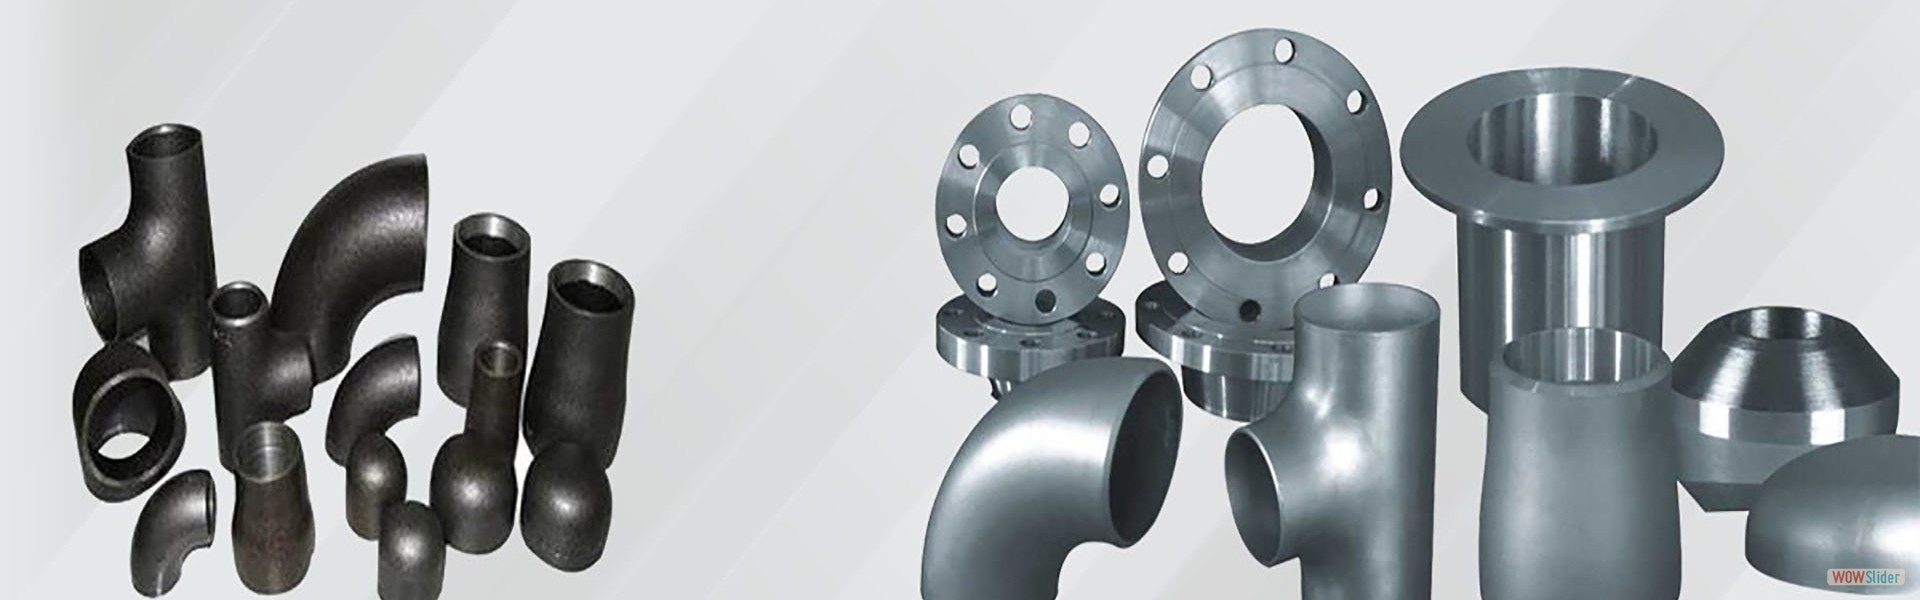 ERW Pipes | ERW MS Pipes | ERW GI Pipes | Hollow Section